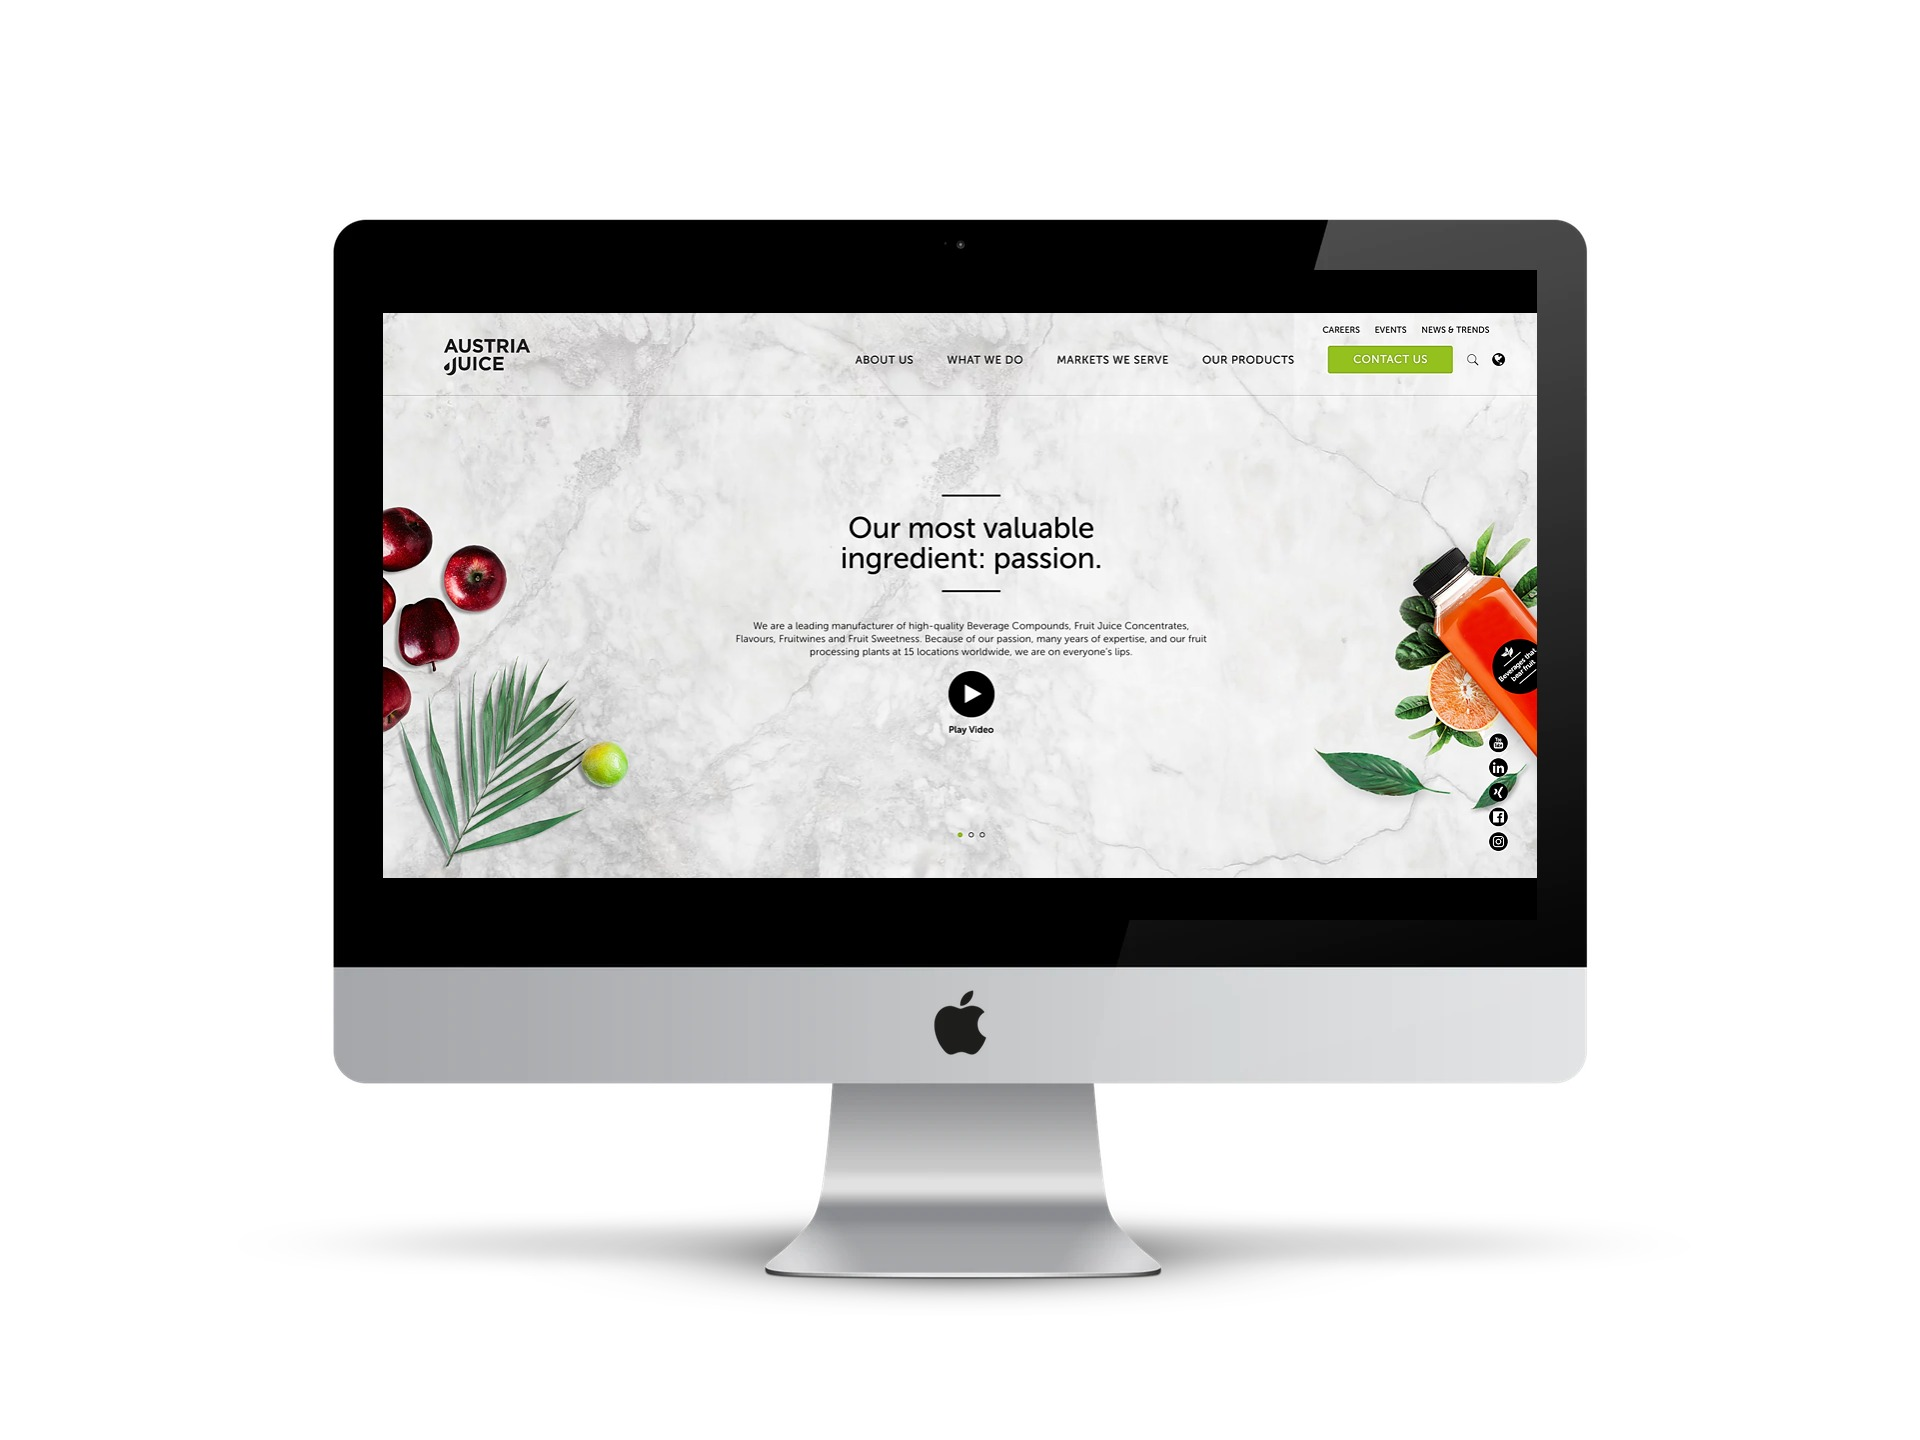 inbound-marketing-website-beispiel-austria-juice